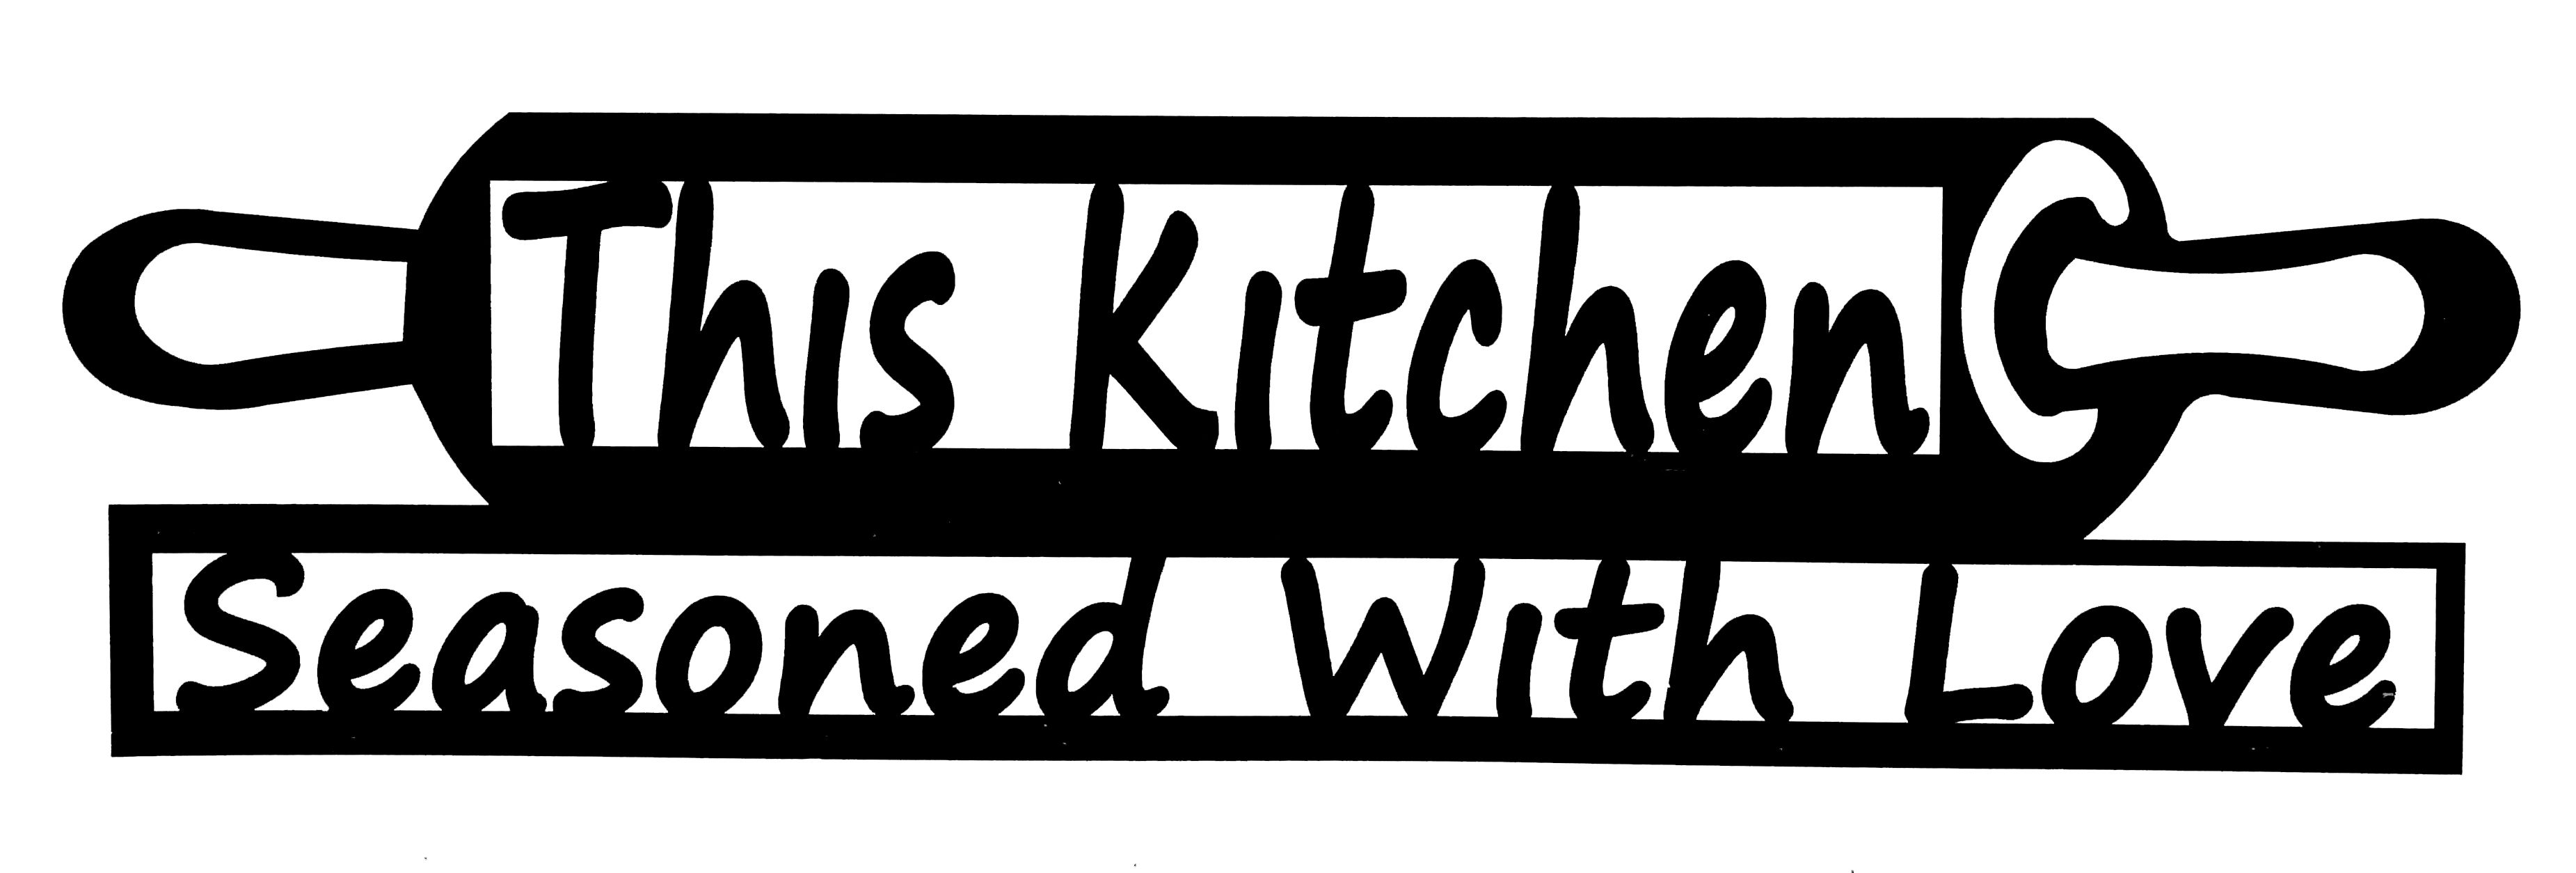 This Kitchen Seasoned With Love, Plasma Cut Metal Sign